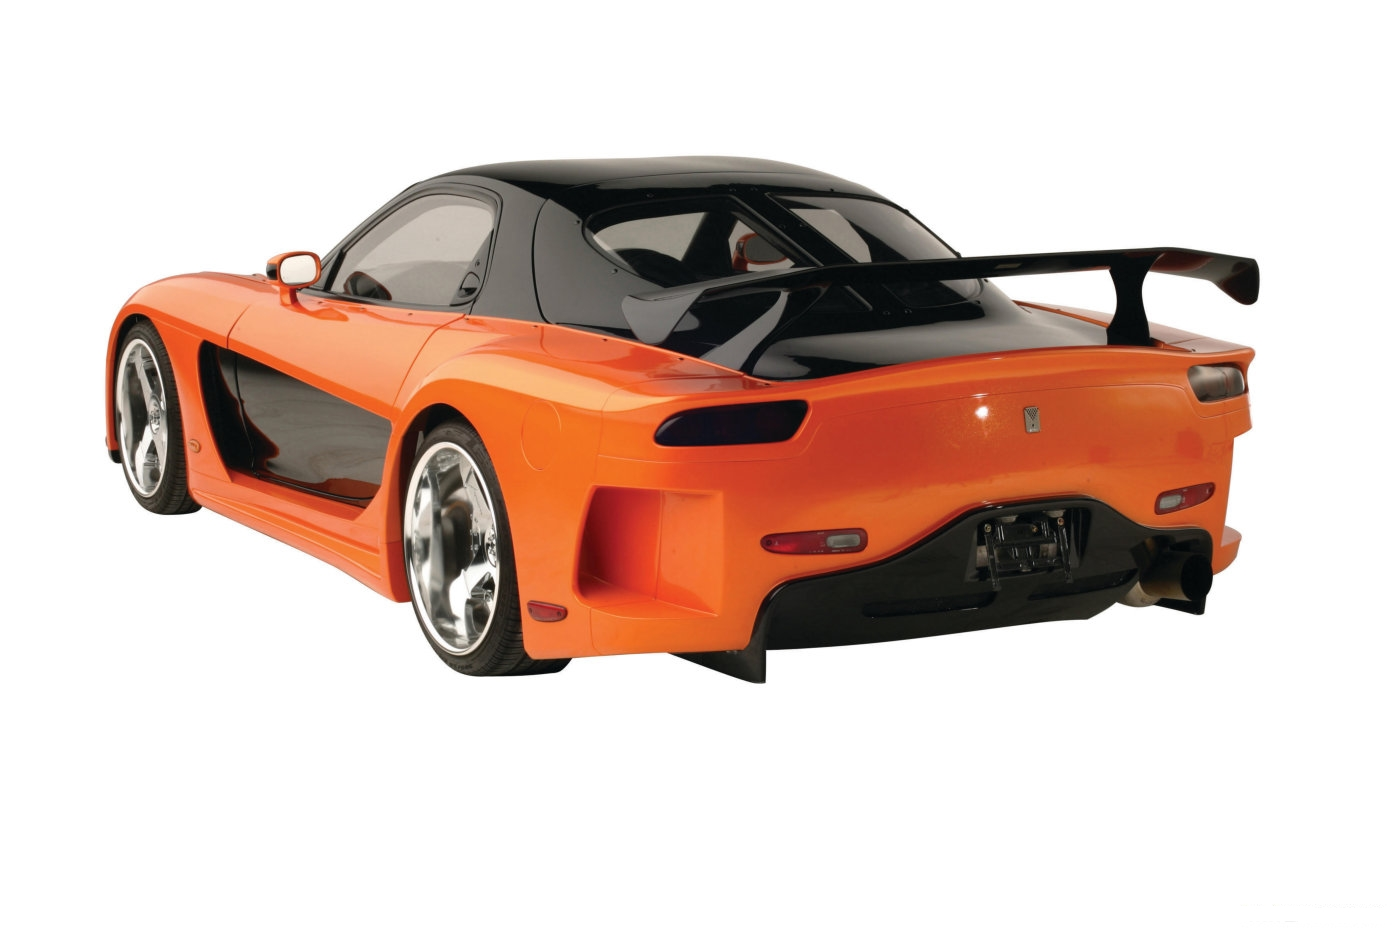 imagini the fast and the furious tokyo drift 2006 imagini furios i iute tokyo drift. Black Bedroom Furniture Sets. Home Design Ideas